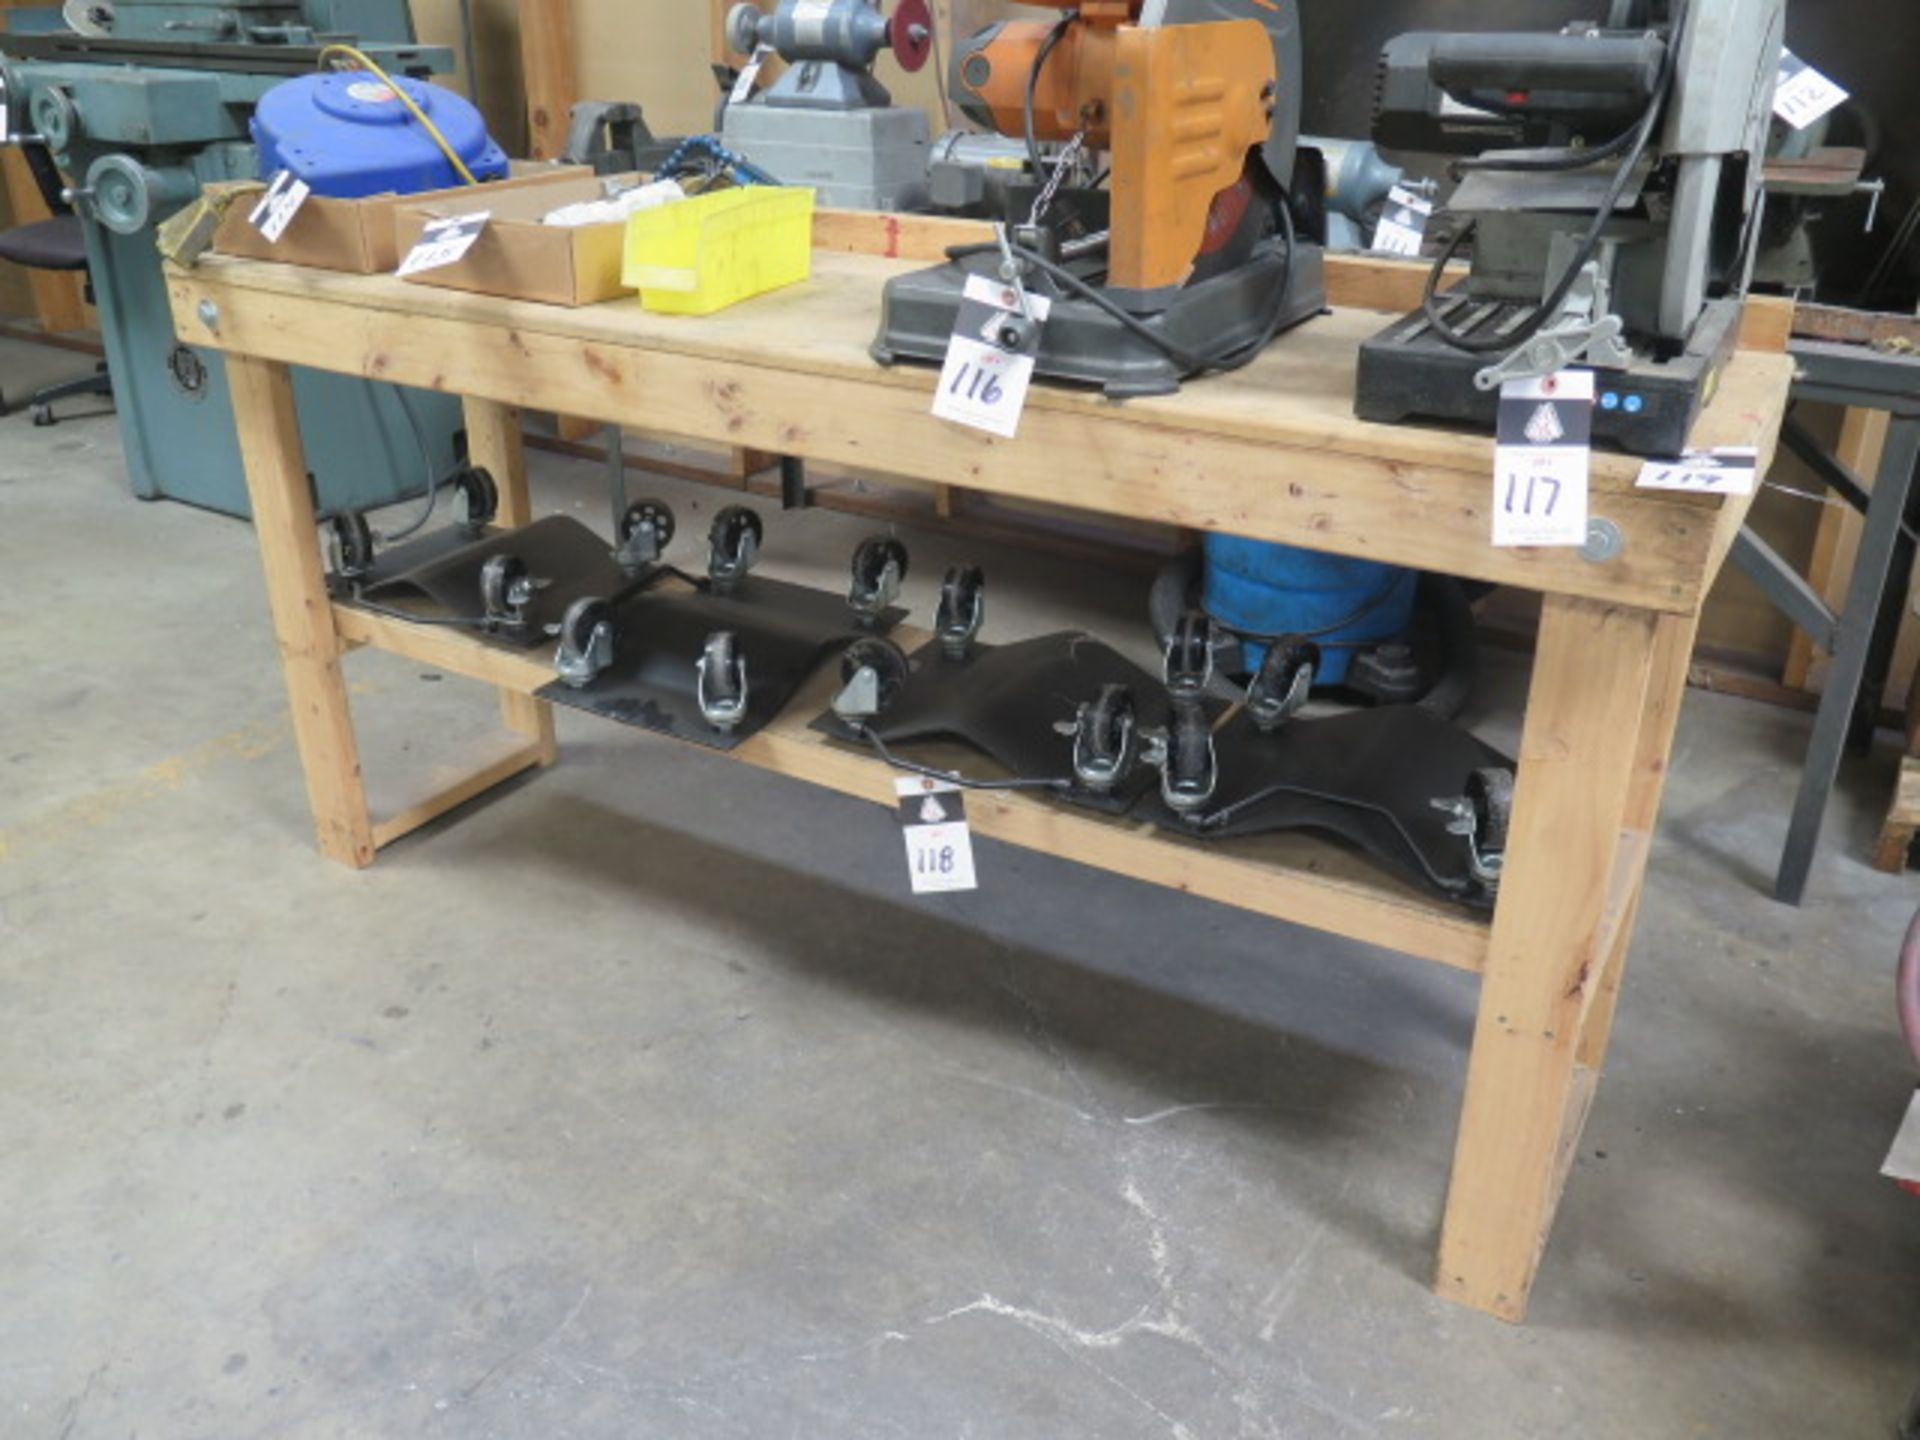 Wooden Work Bench (SOLD AS-IS - NO WARRANTY)